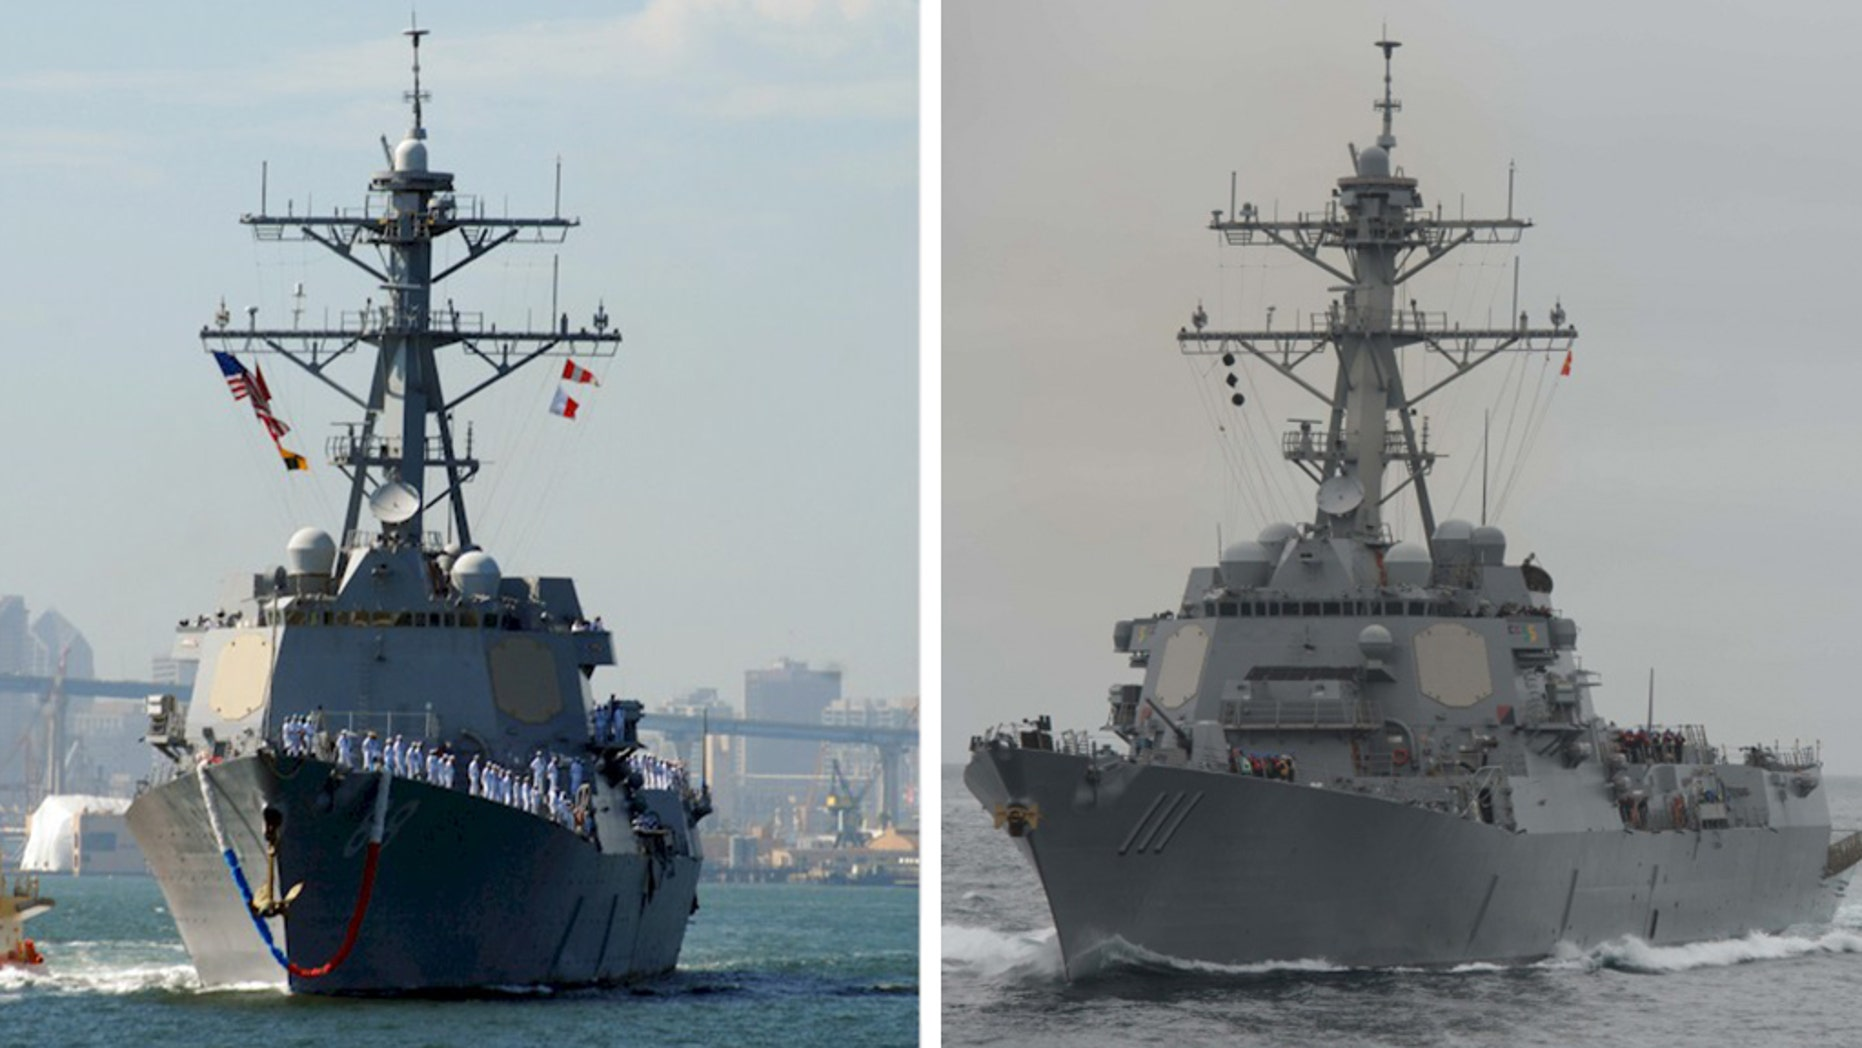 The Navy sent USS Preble, left, and USS Spruance, right, near the Chinese manmade island of Mischief Reef in the South China Sea, the location of several territorial conflicts that have raised tensions in the region. (Mass Communication Specialist Seaman Apprentice Joshua Leonard / U.S. Navy photo)